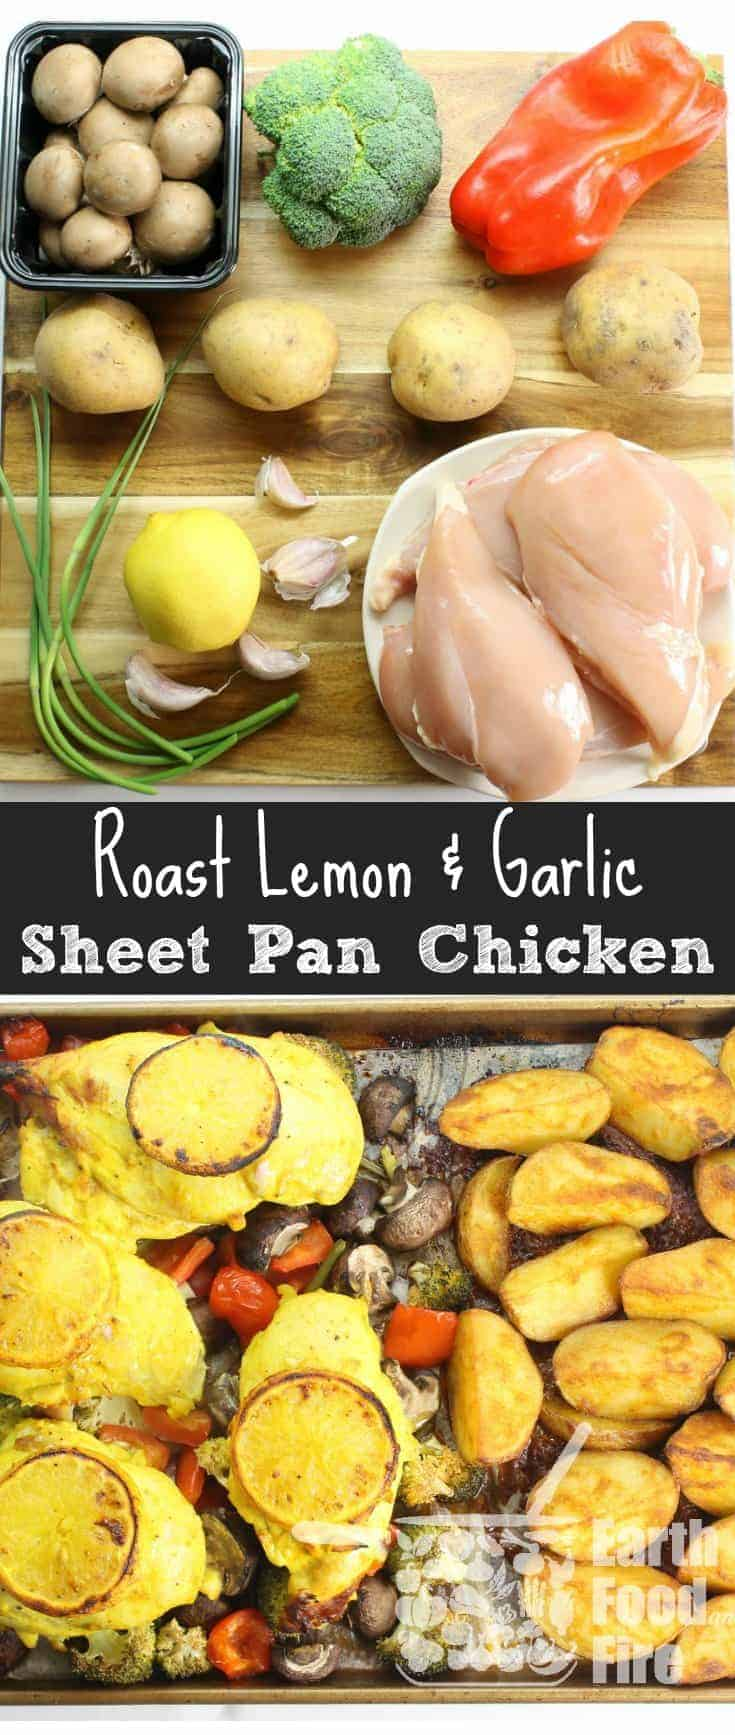 Healthy sheet pan suppers are ideal for busy families looking to do less cooking and cleaning, while enjoying a full fledged meal. This garlic & lemon roasted chicken with sides, will feed a hungry family, without having to stand in front of the stove or do a lot of clean up.